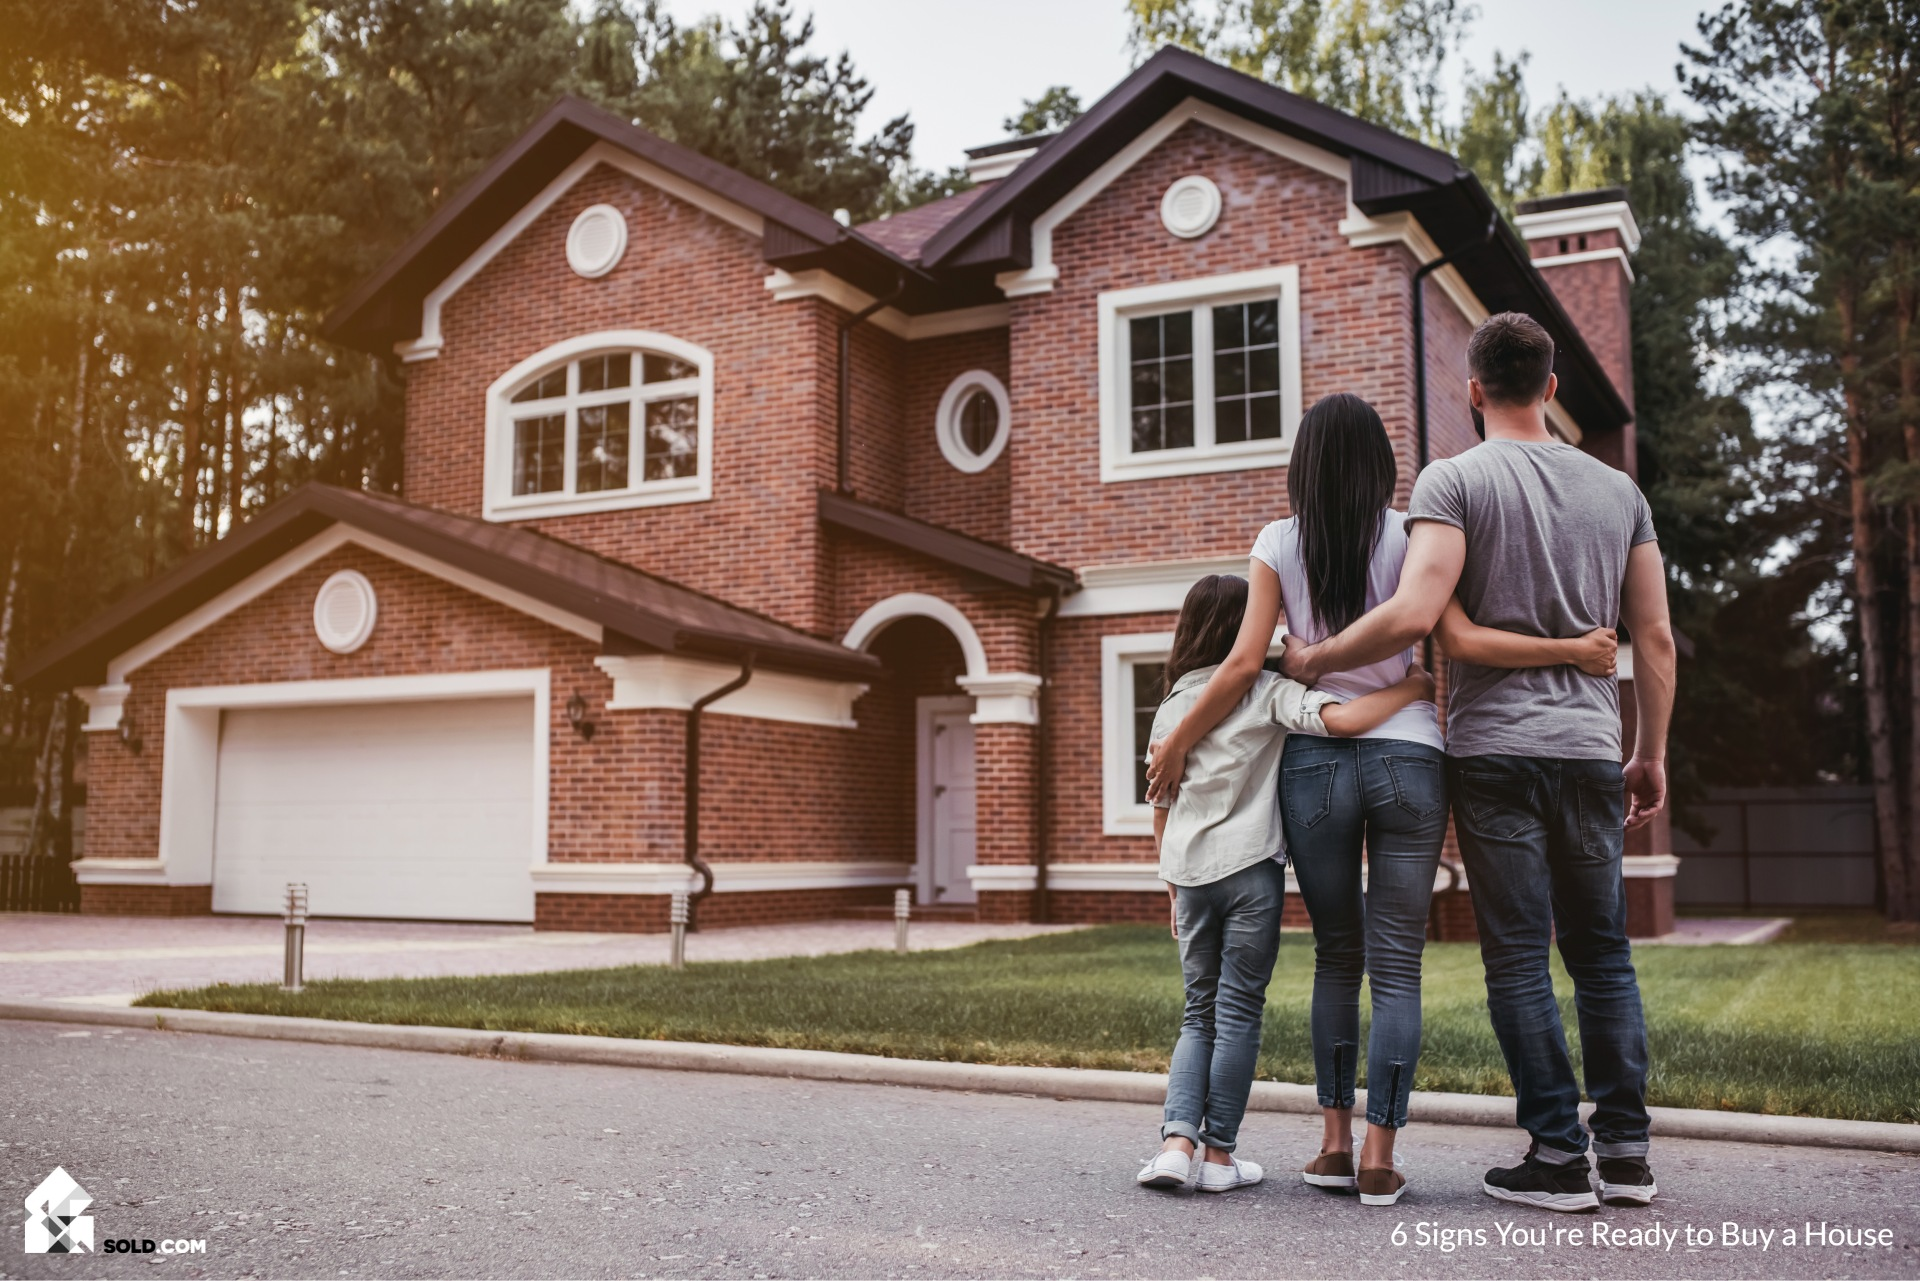 6 Signs You're Ready to Buy a House